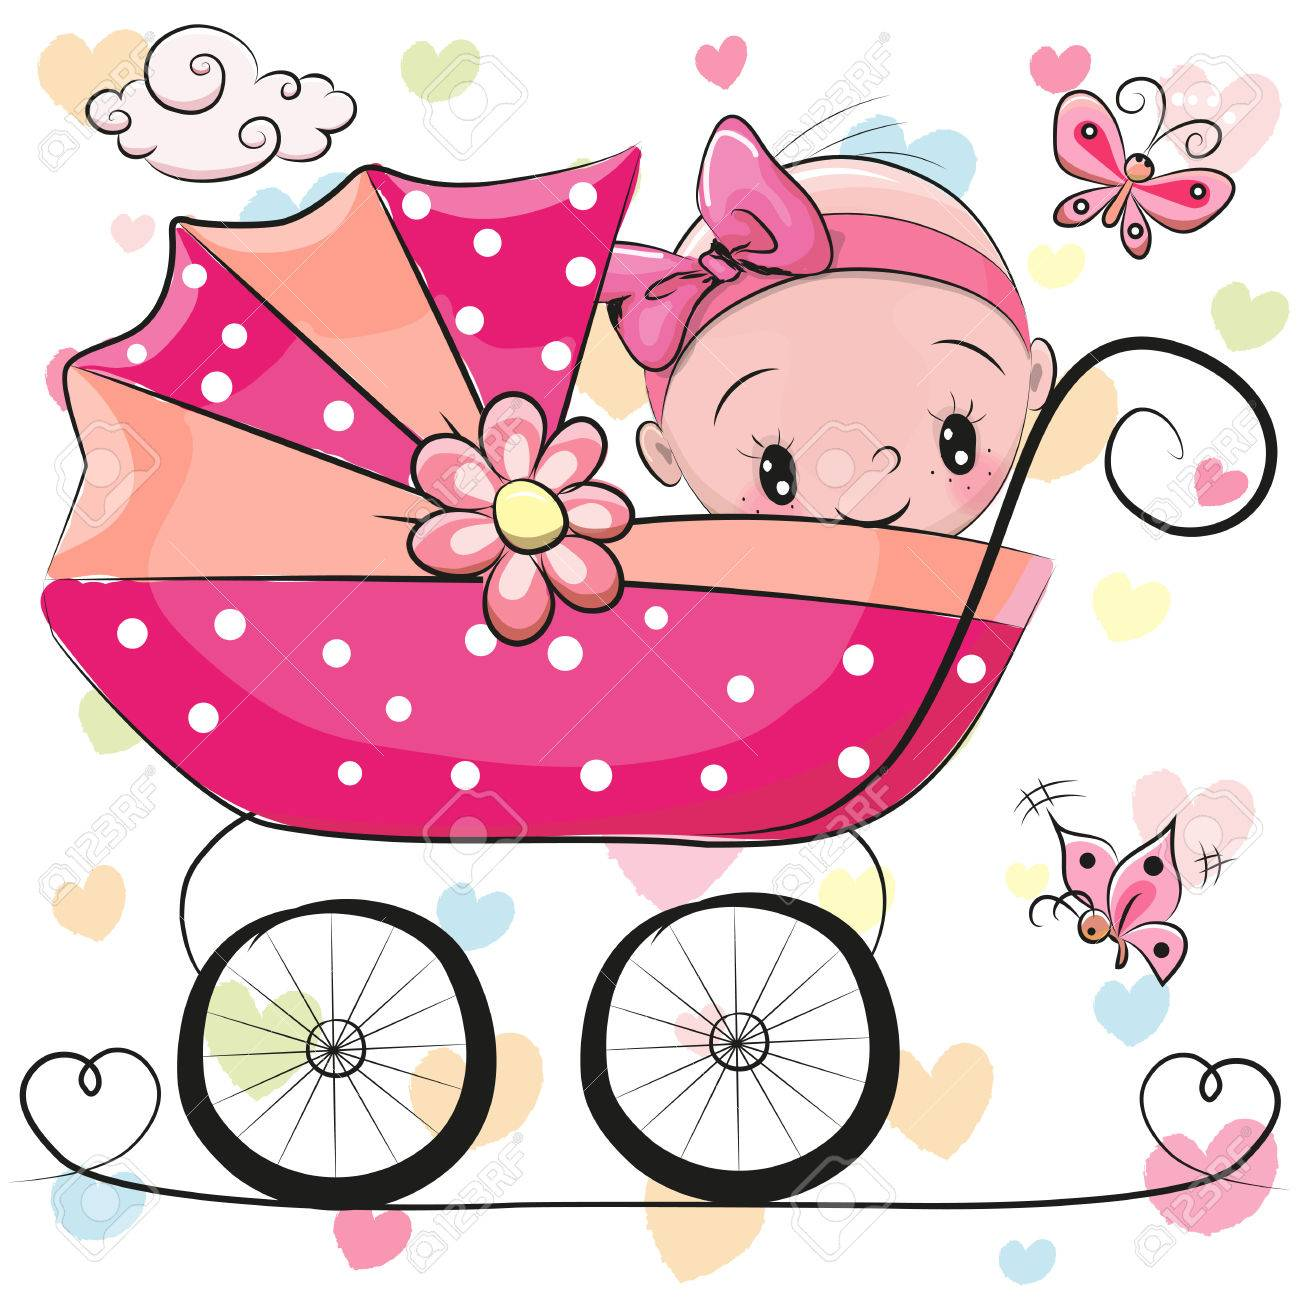 Cute Cartoon Baby girl is sitting on a carriage on a hearts background - 72014180